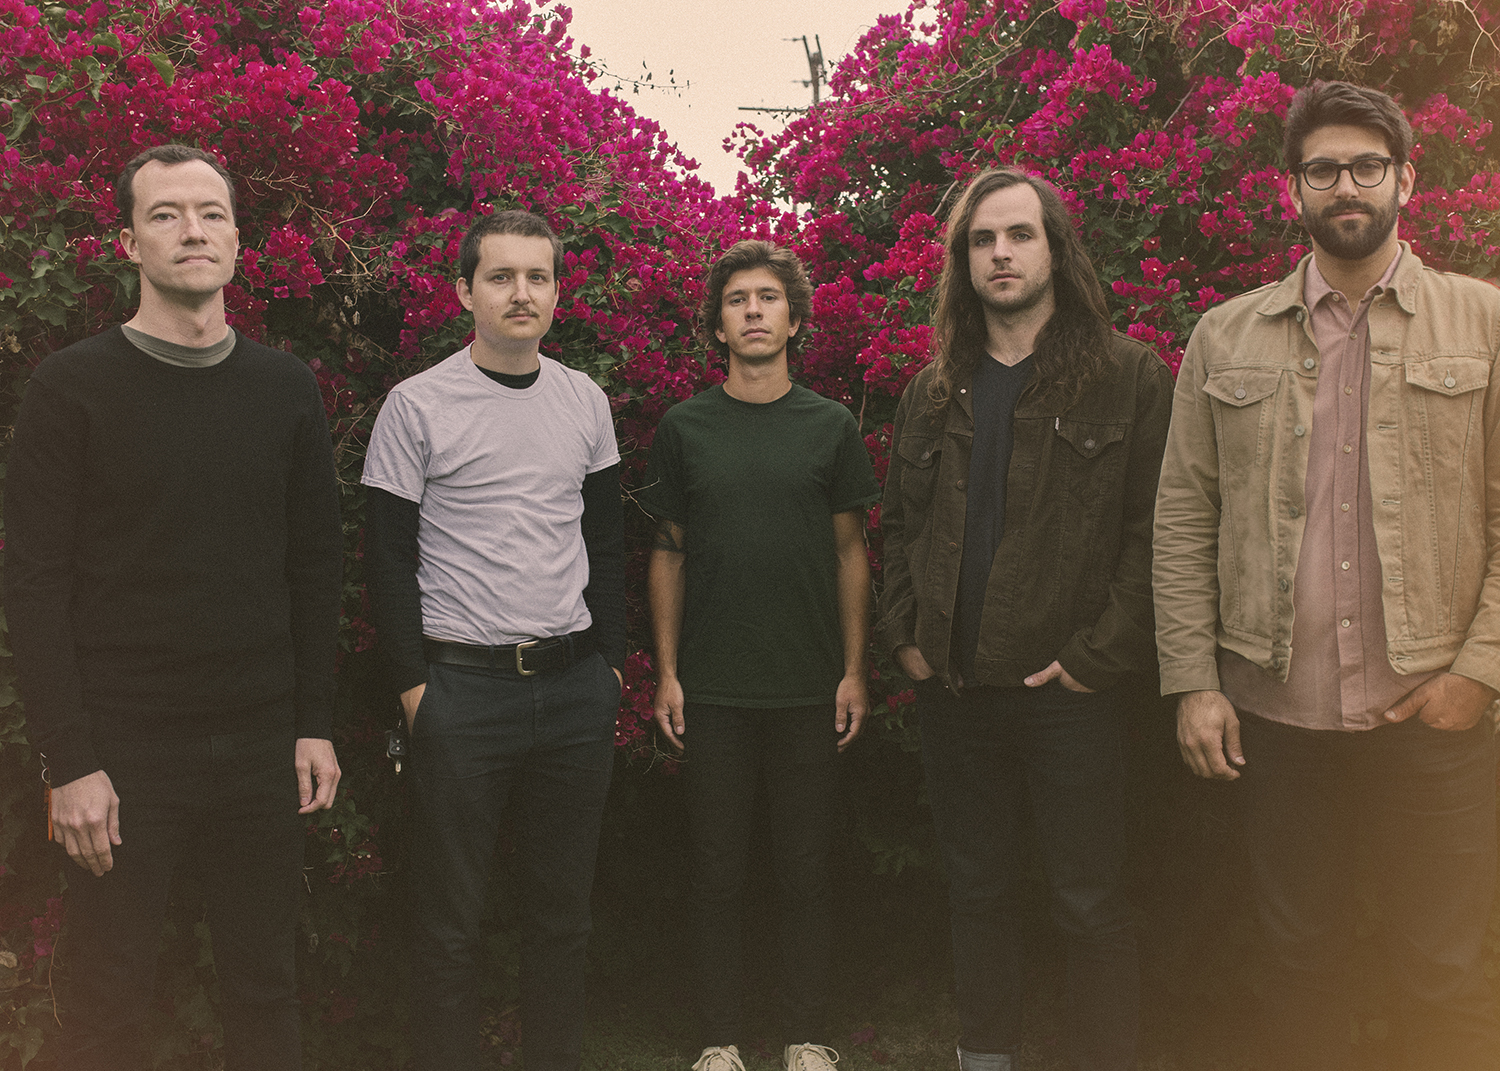 Touche Amore – Featured Image